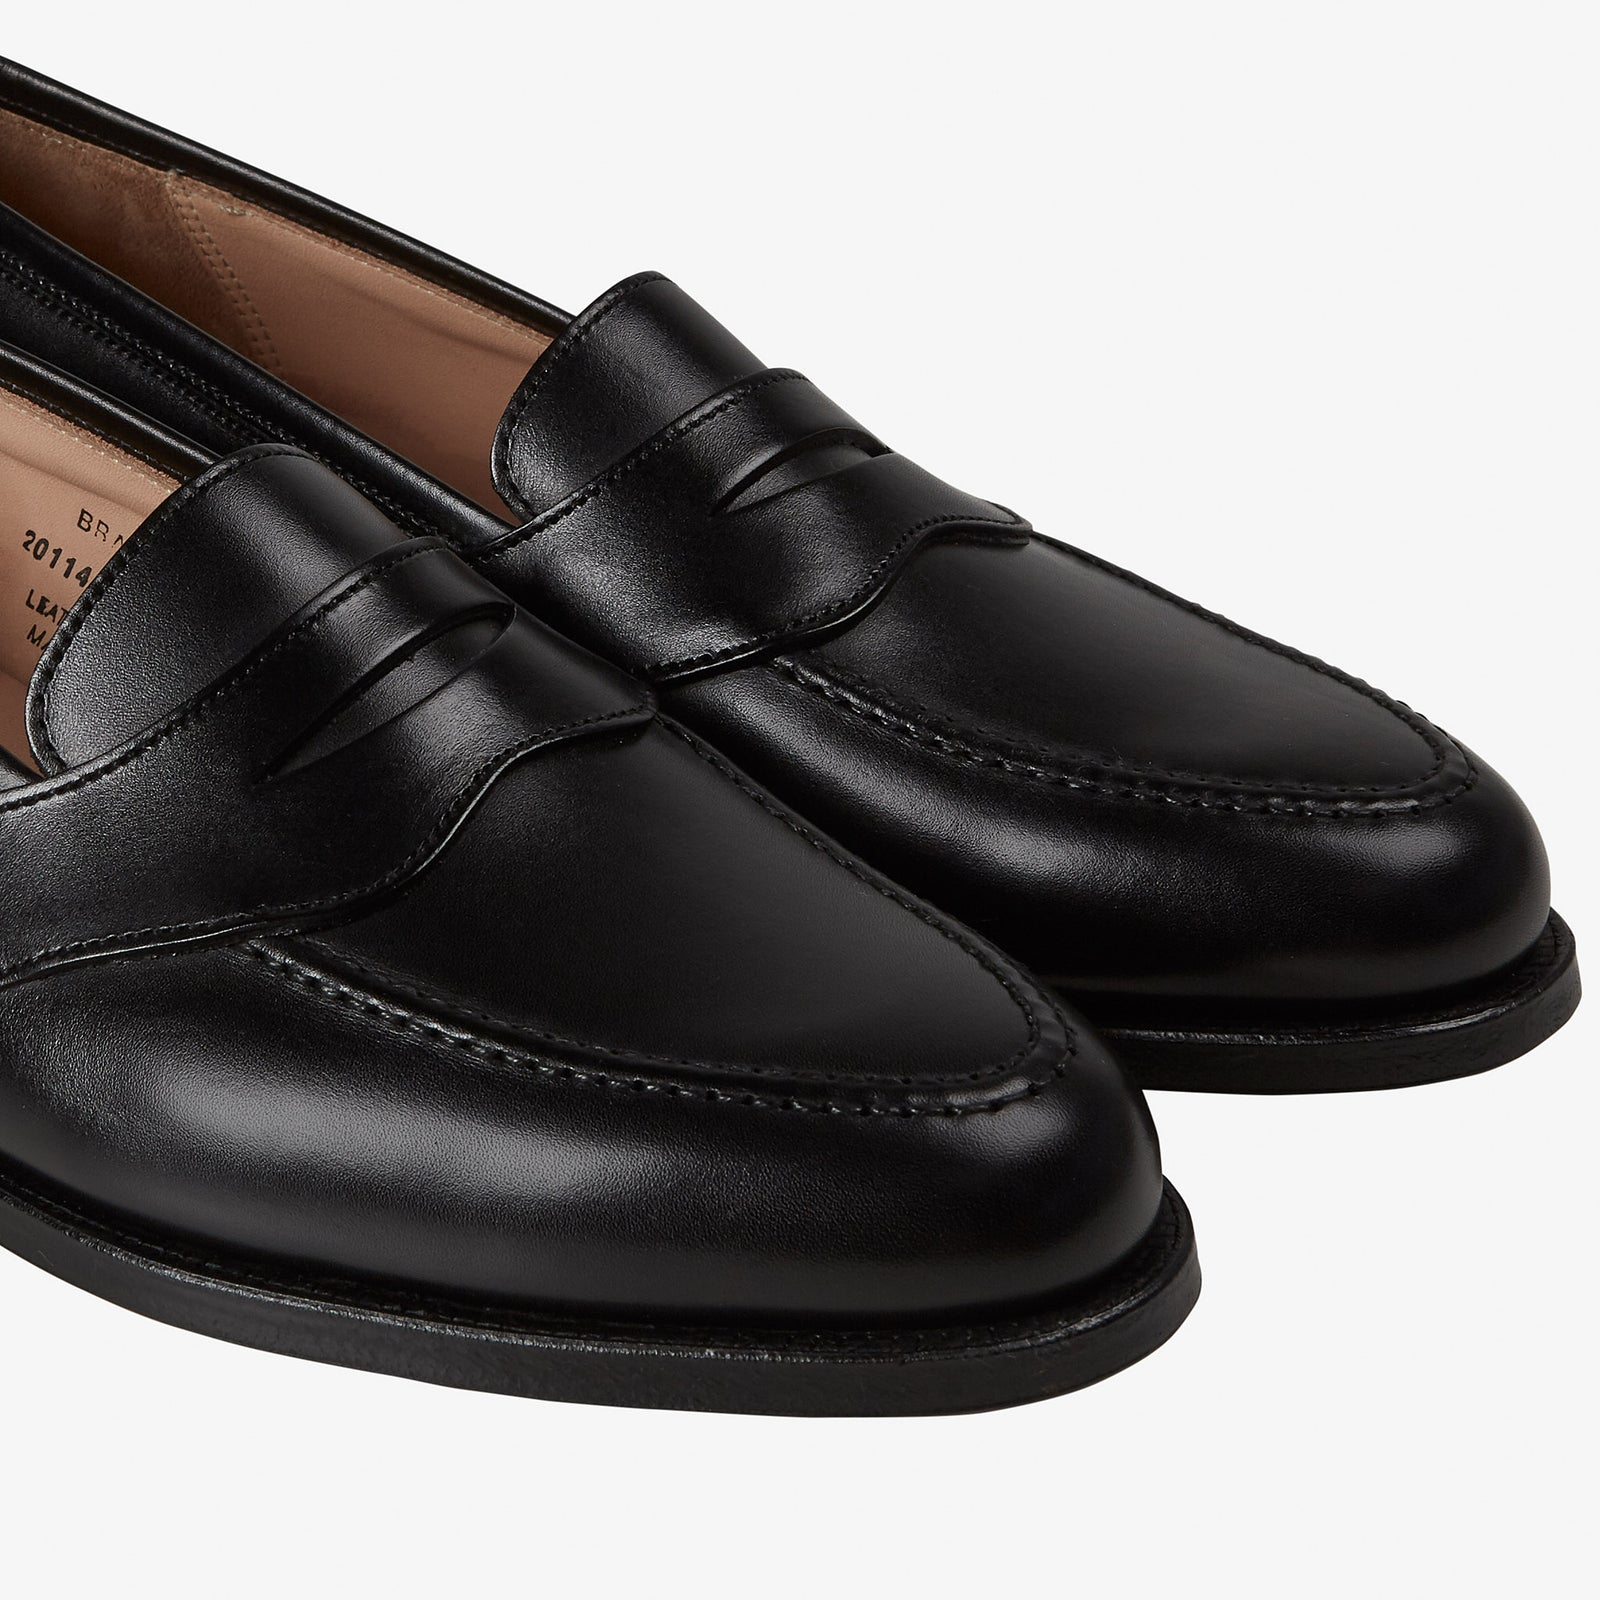 Crockett & Jones Bradbourne Loafer Black Calf